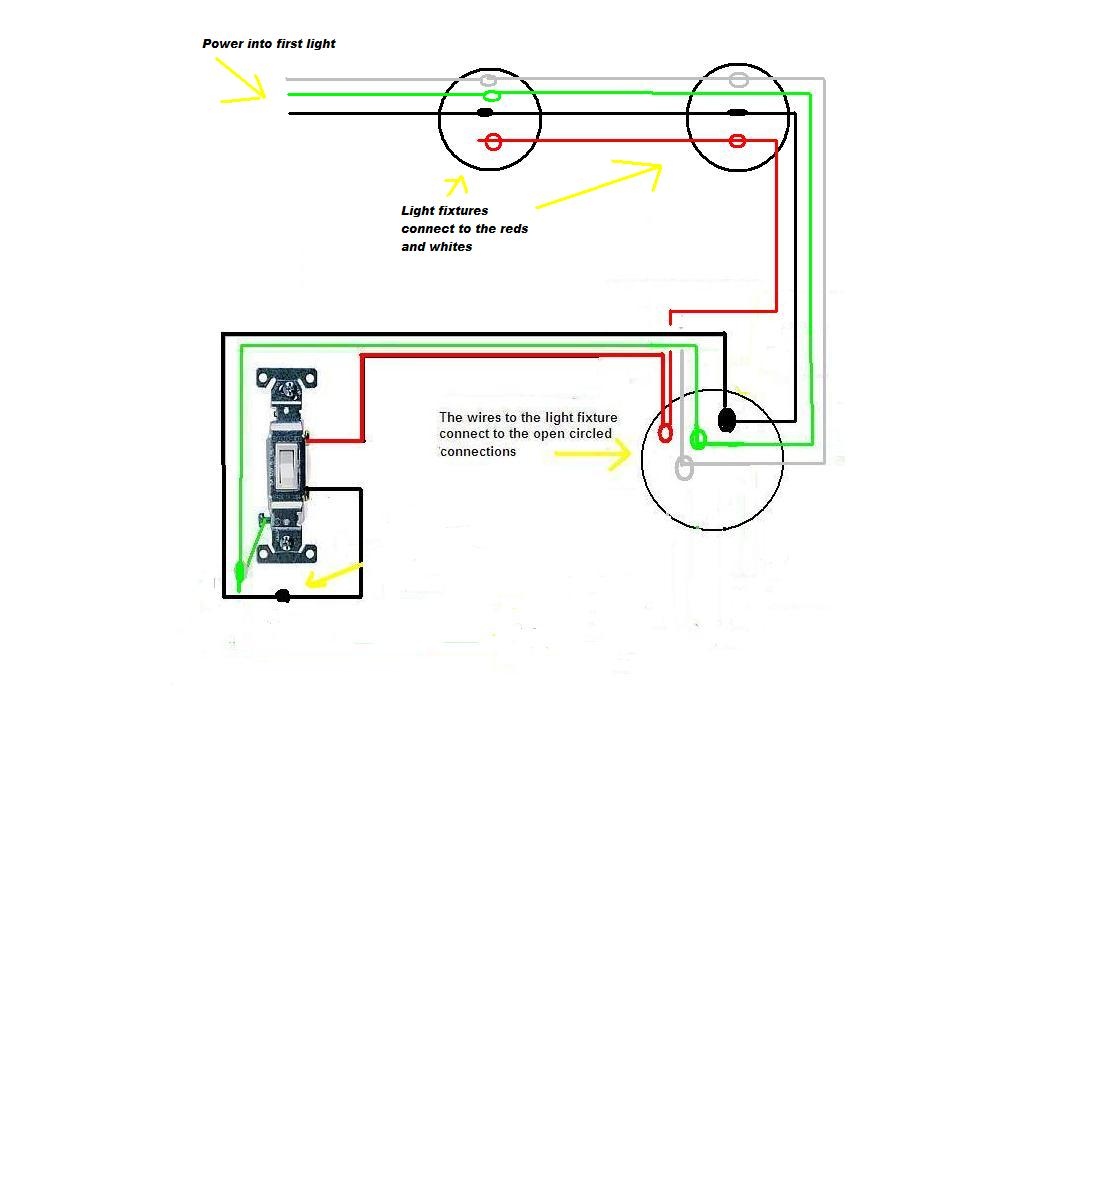 I Am Wiring A Series Of Lights The Power Source Feeds Through All One Switch Diagram Multiple Light Fixtures Full Size Image